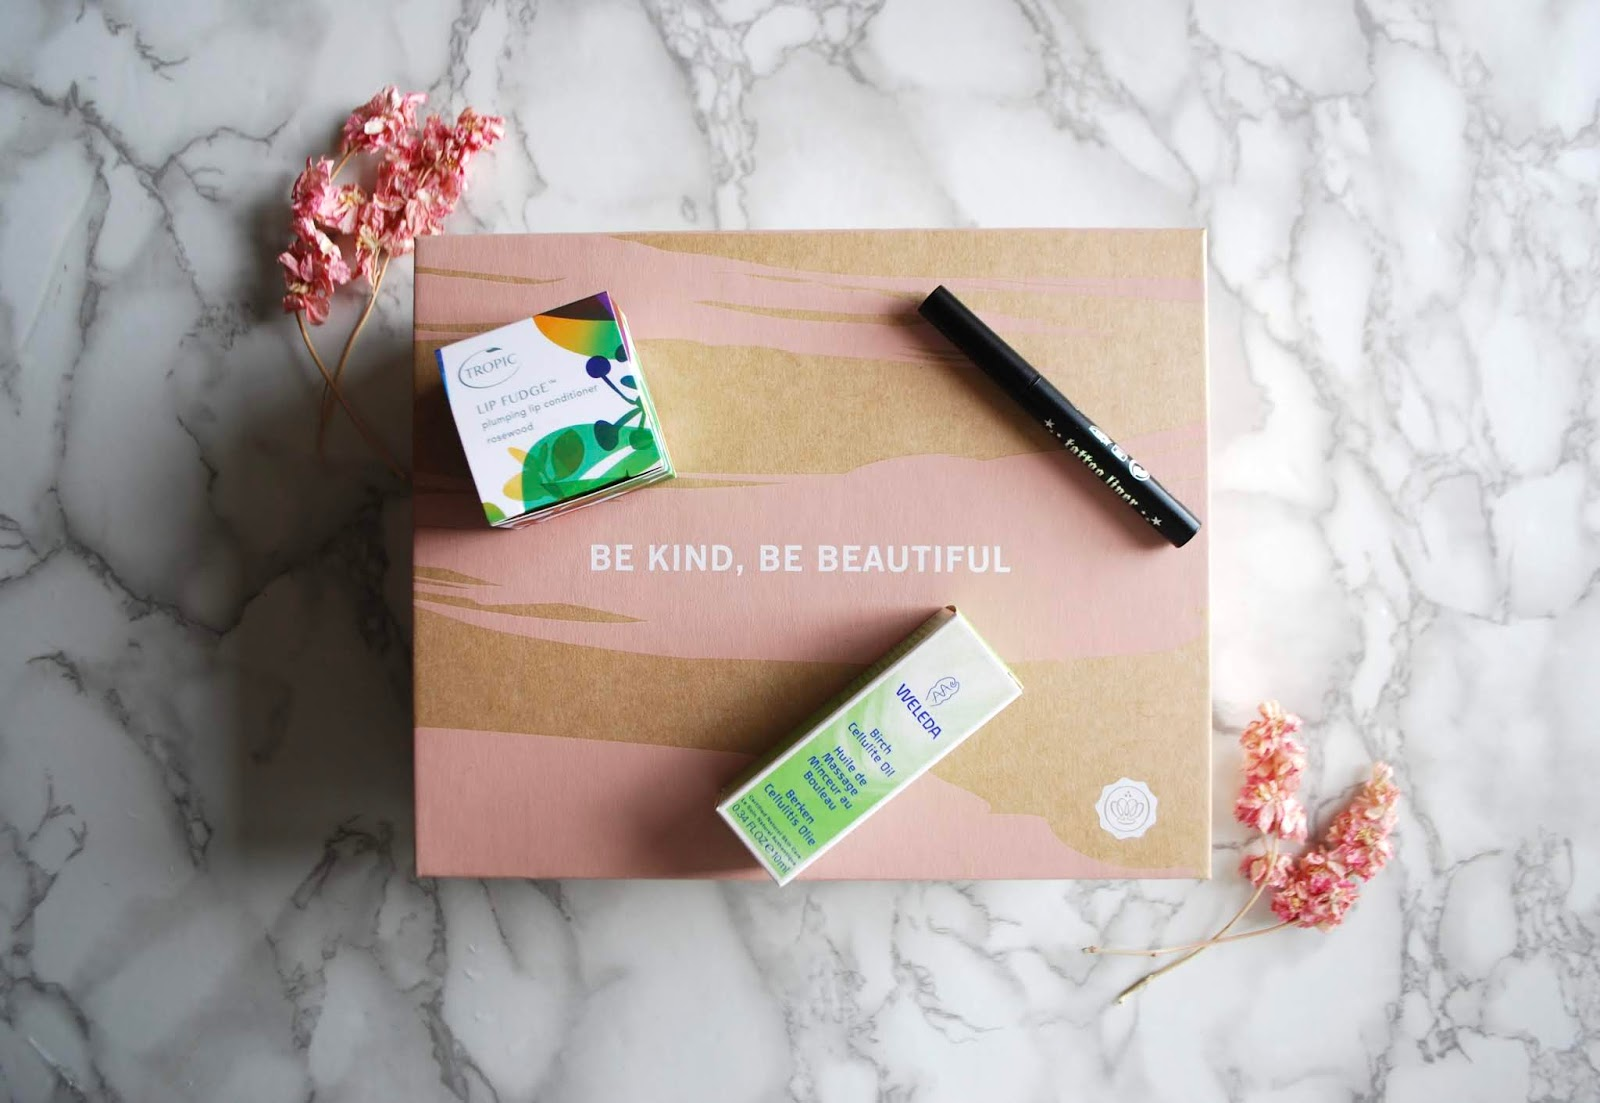 special edition vegan glossybox!